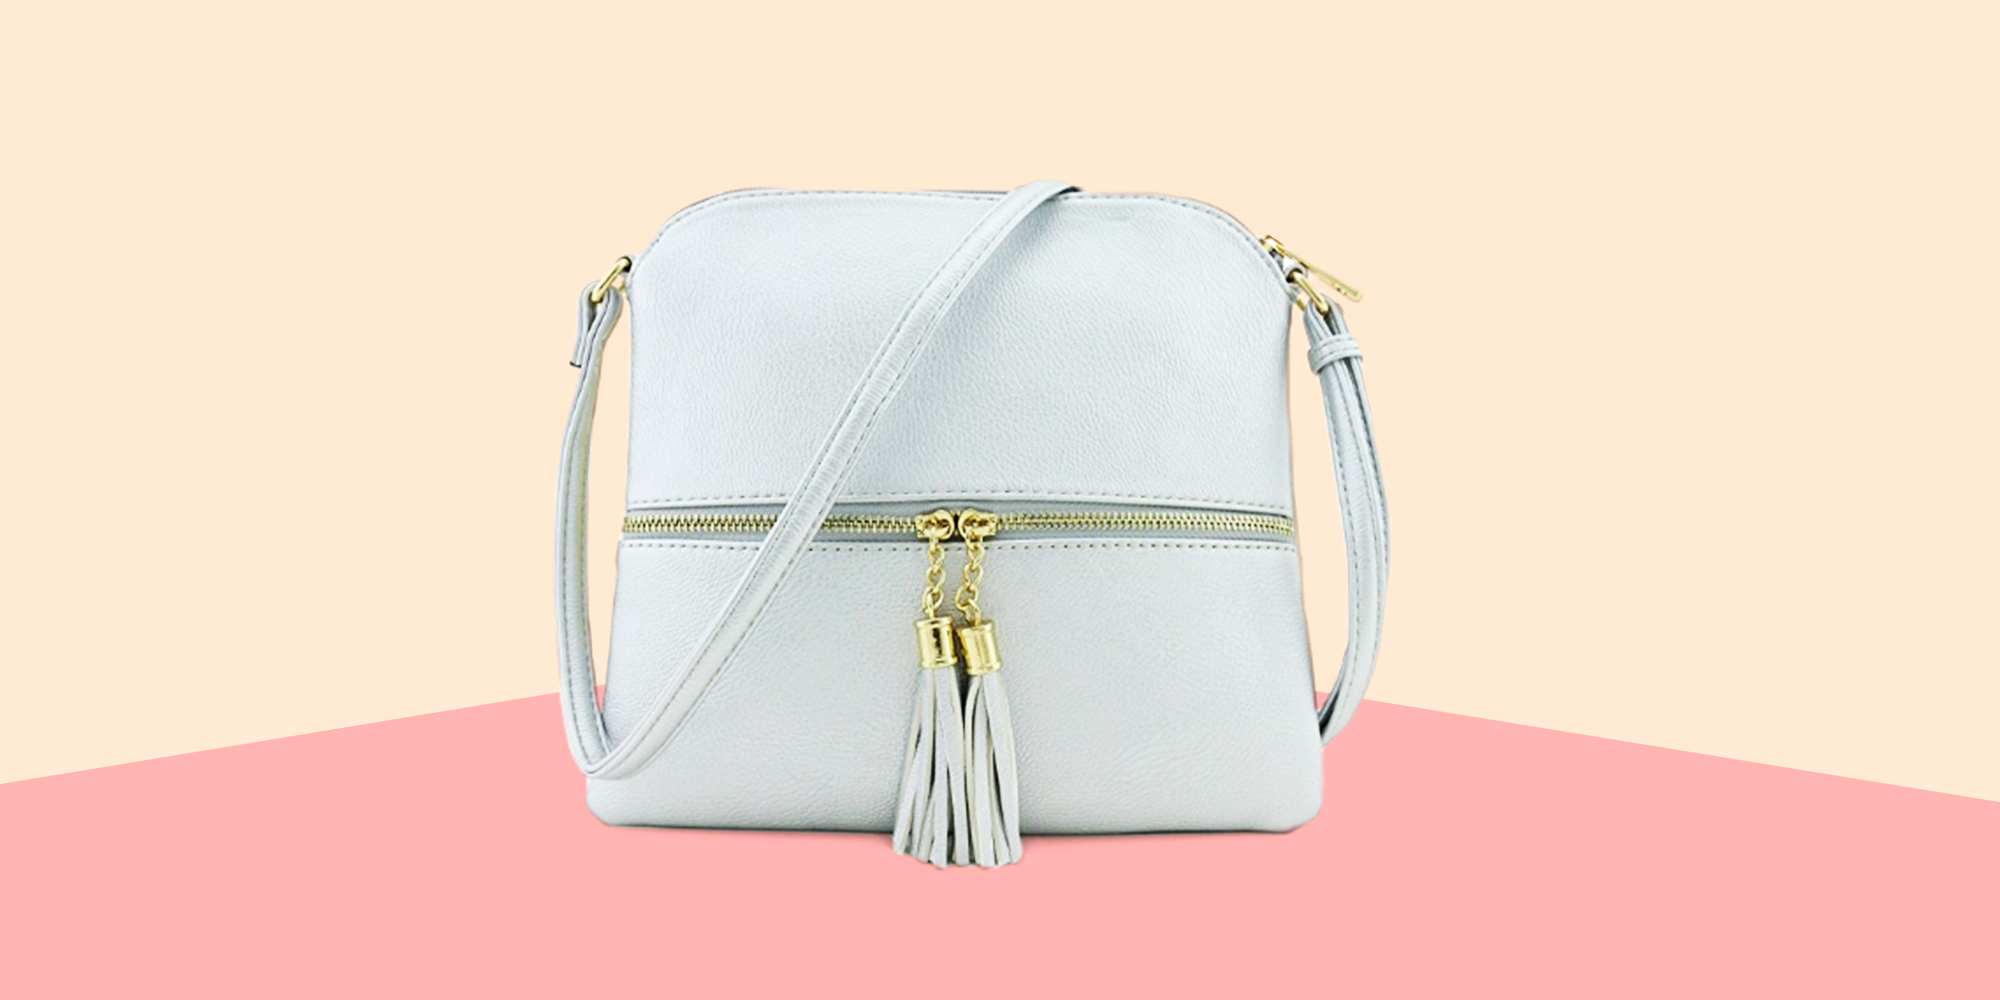 acebd5c6eba3 The Deluxity Crossbody Bag That Everyone on Amazon Loves Is Up to 88% Off  Today